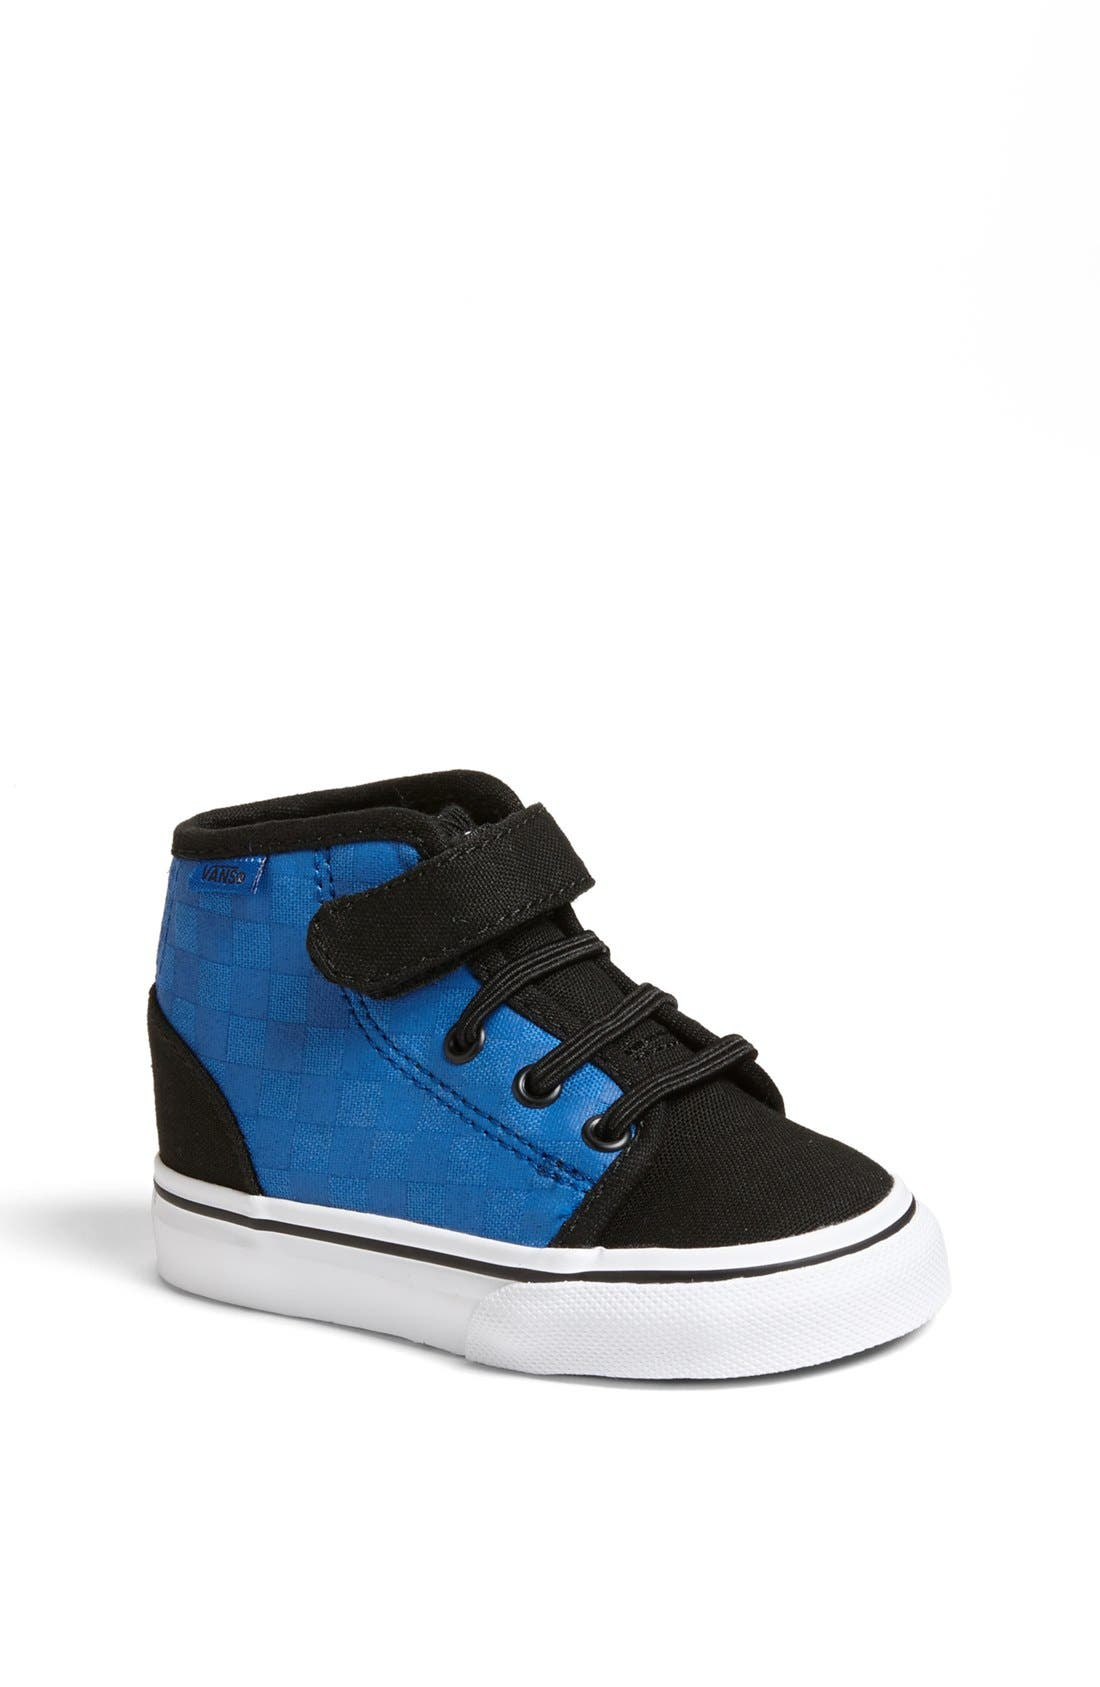 Alternate Image 1 Selected - Vans High Top Sneaker (Baby, Walker & Toddler)